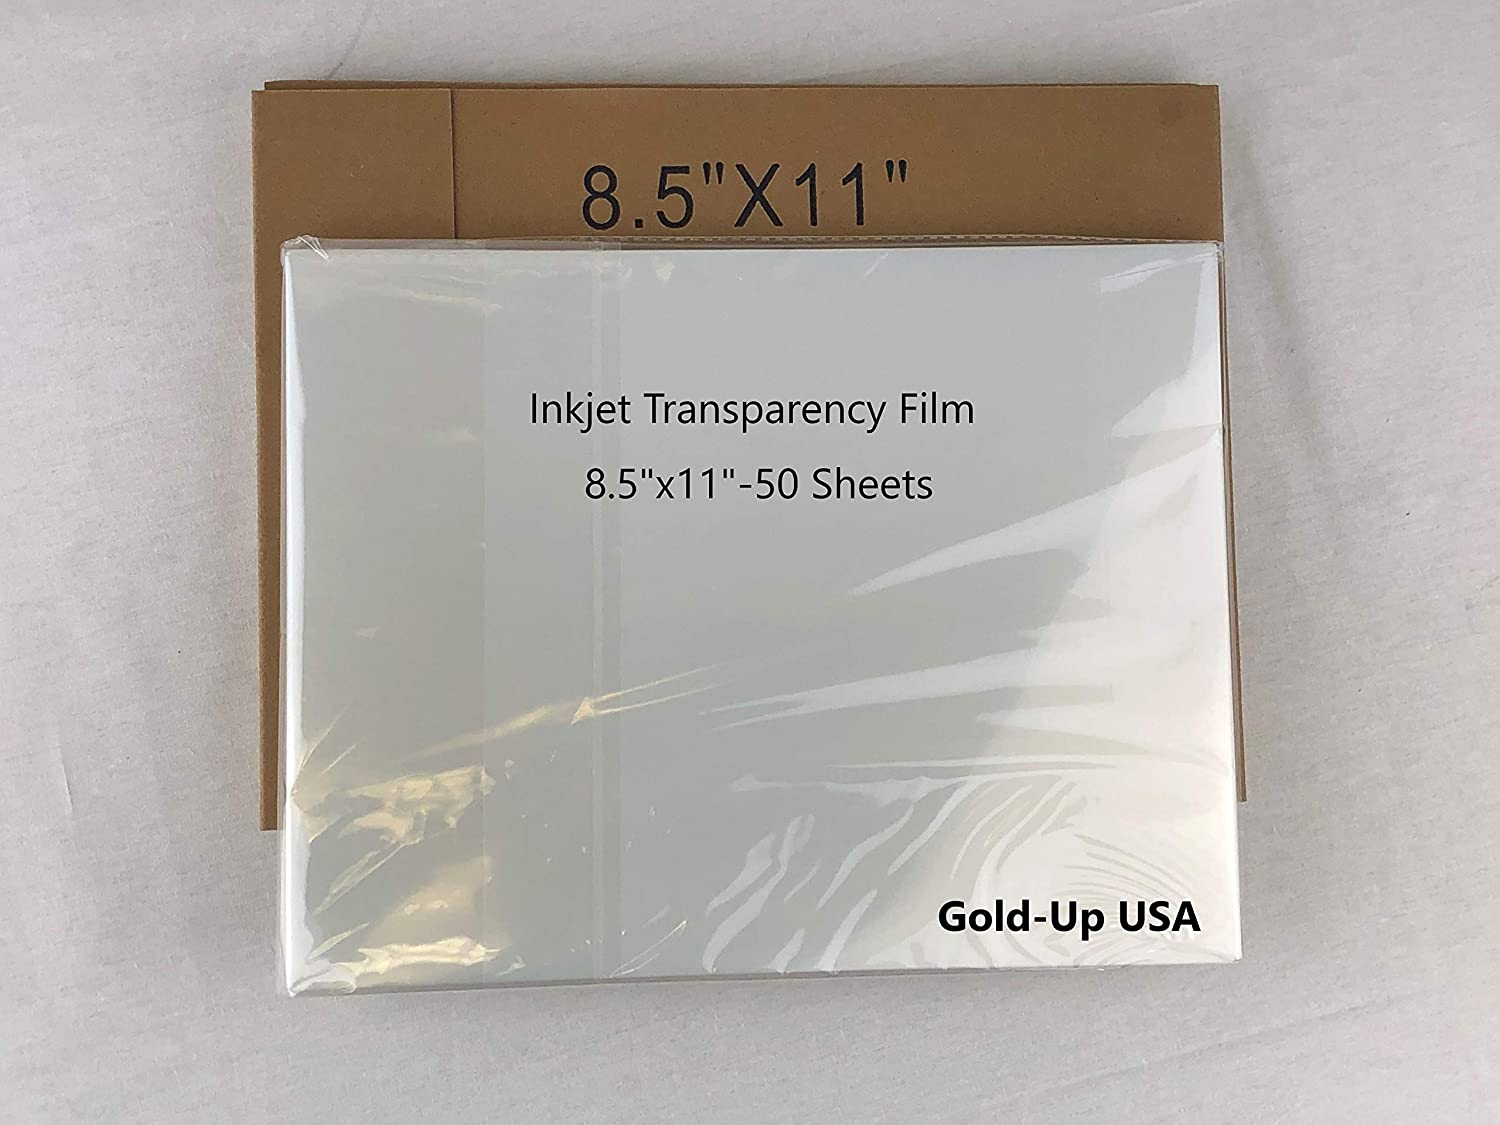 8.5 x 11 Inch Waterproof Inkjet Transparency Film for Silk Screen Printing (50 Sheets)